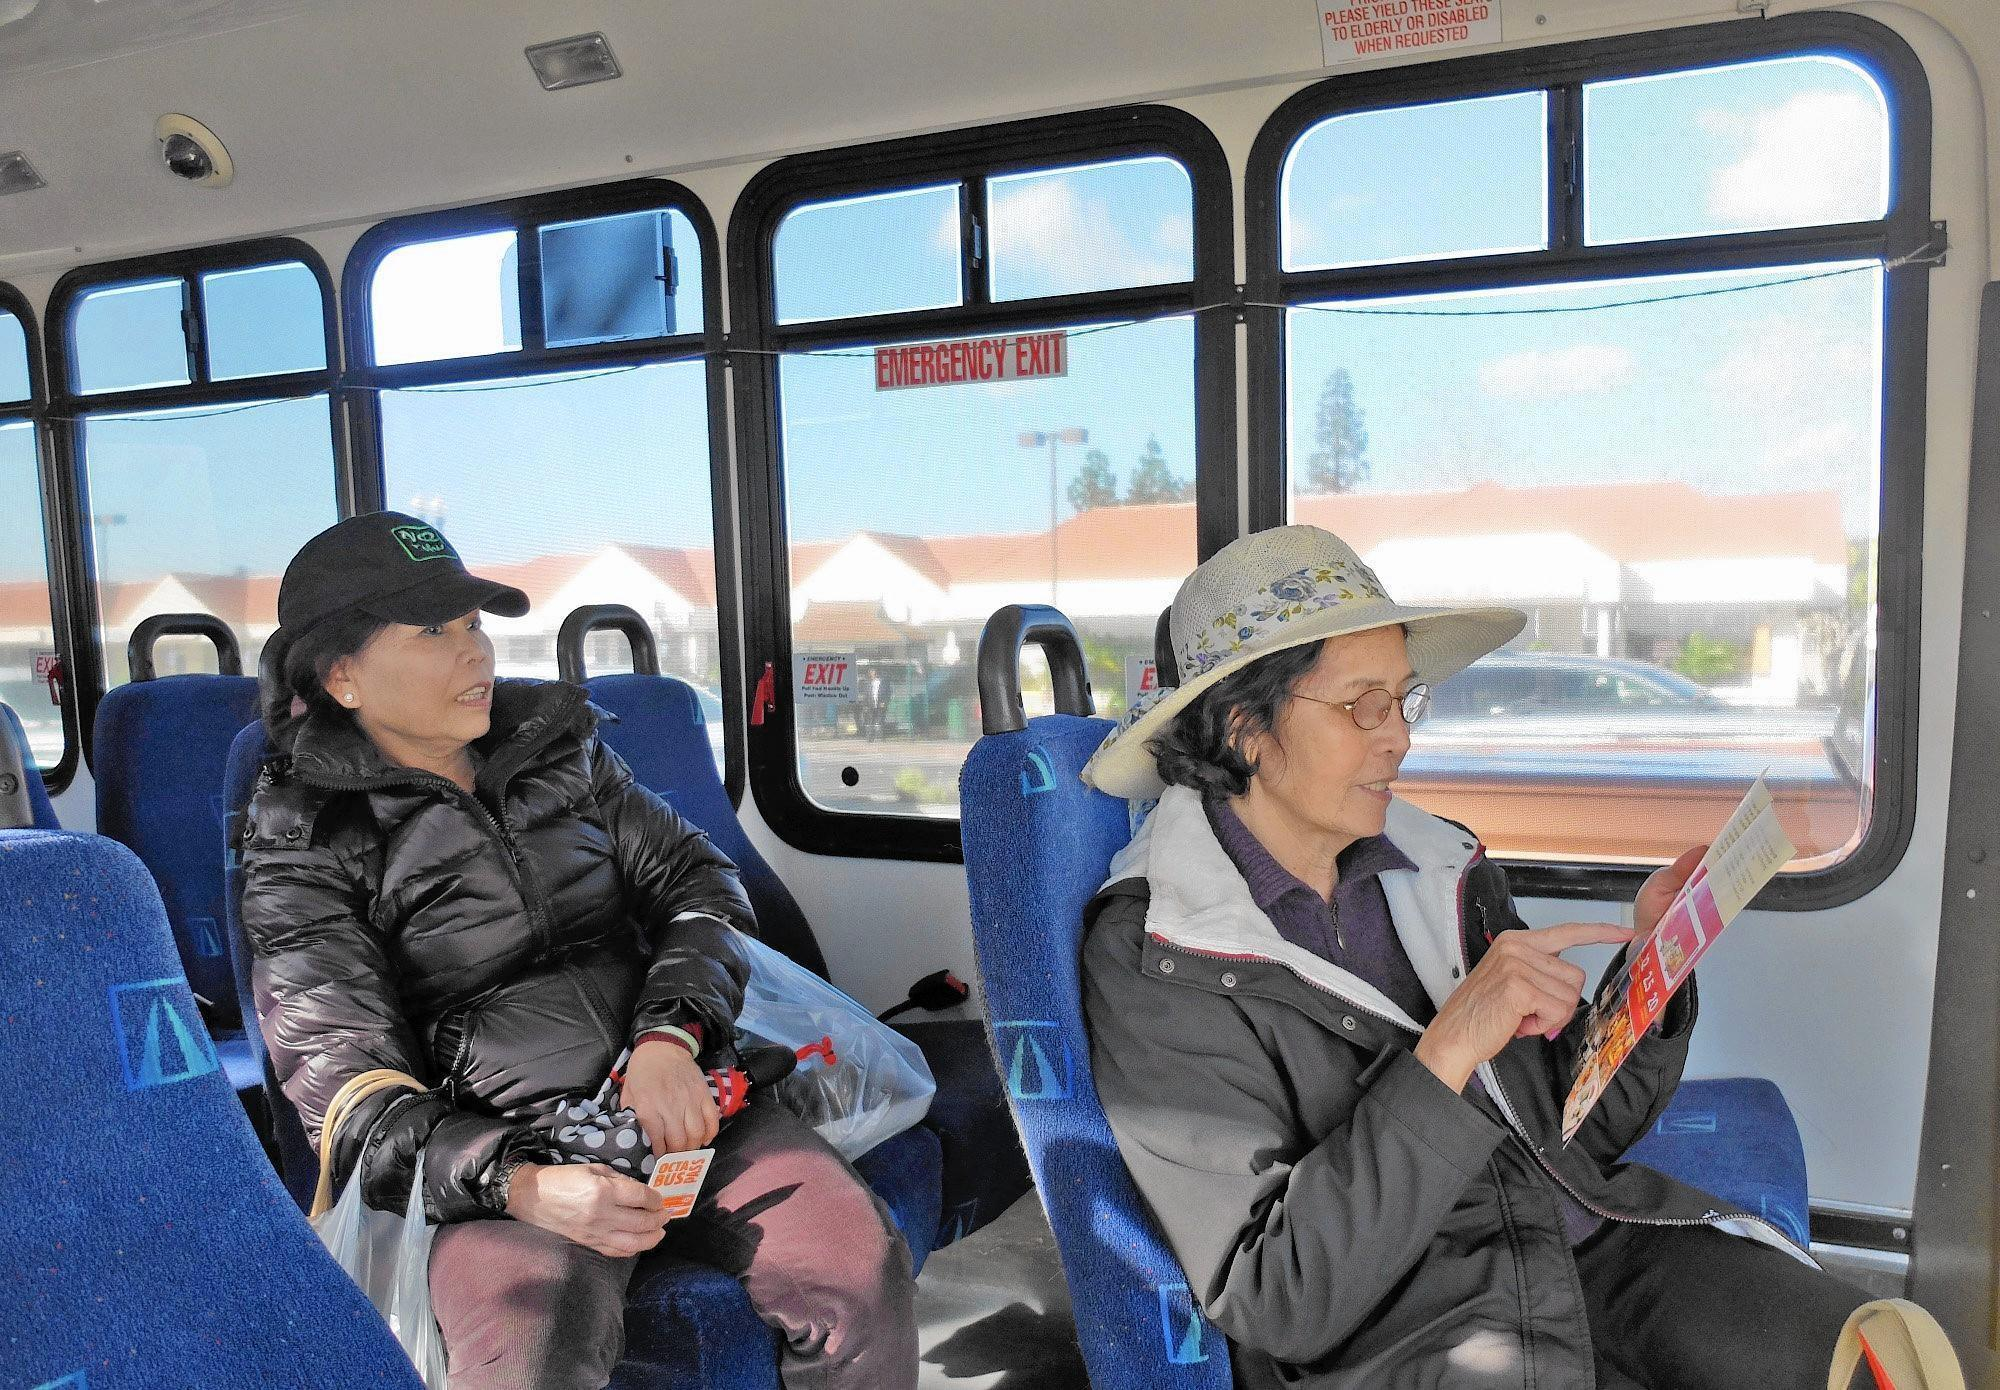 Little Saigon tries shuttles to ease congestion and boost tourism